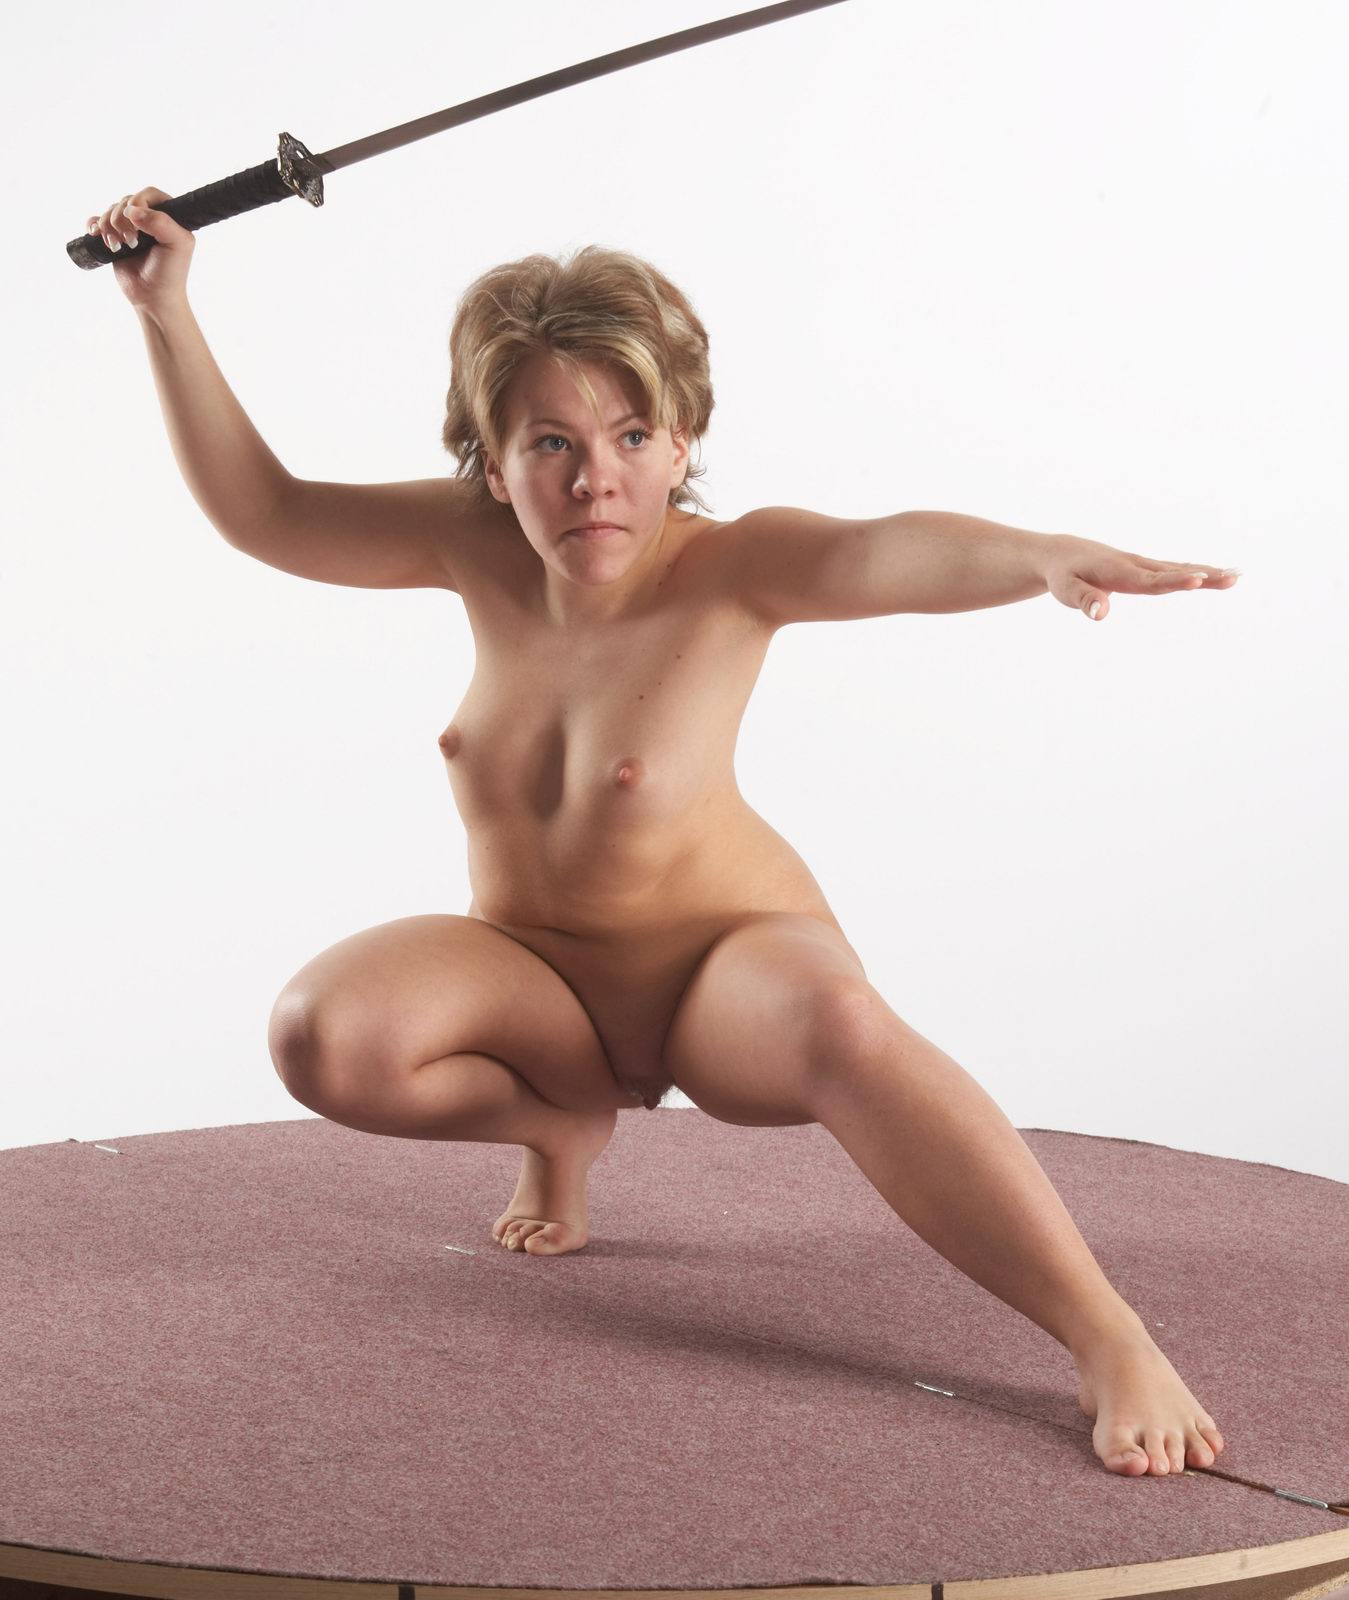 Have removed tiny naked dwarf girl gifs final, sorry